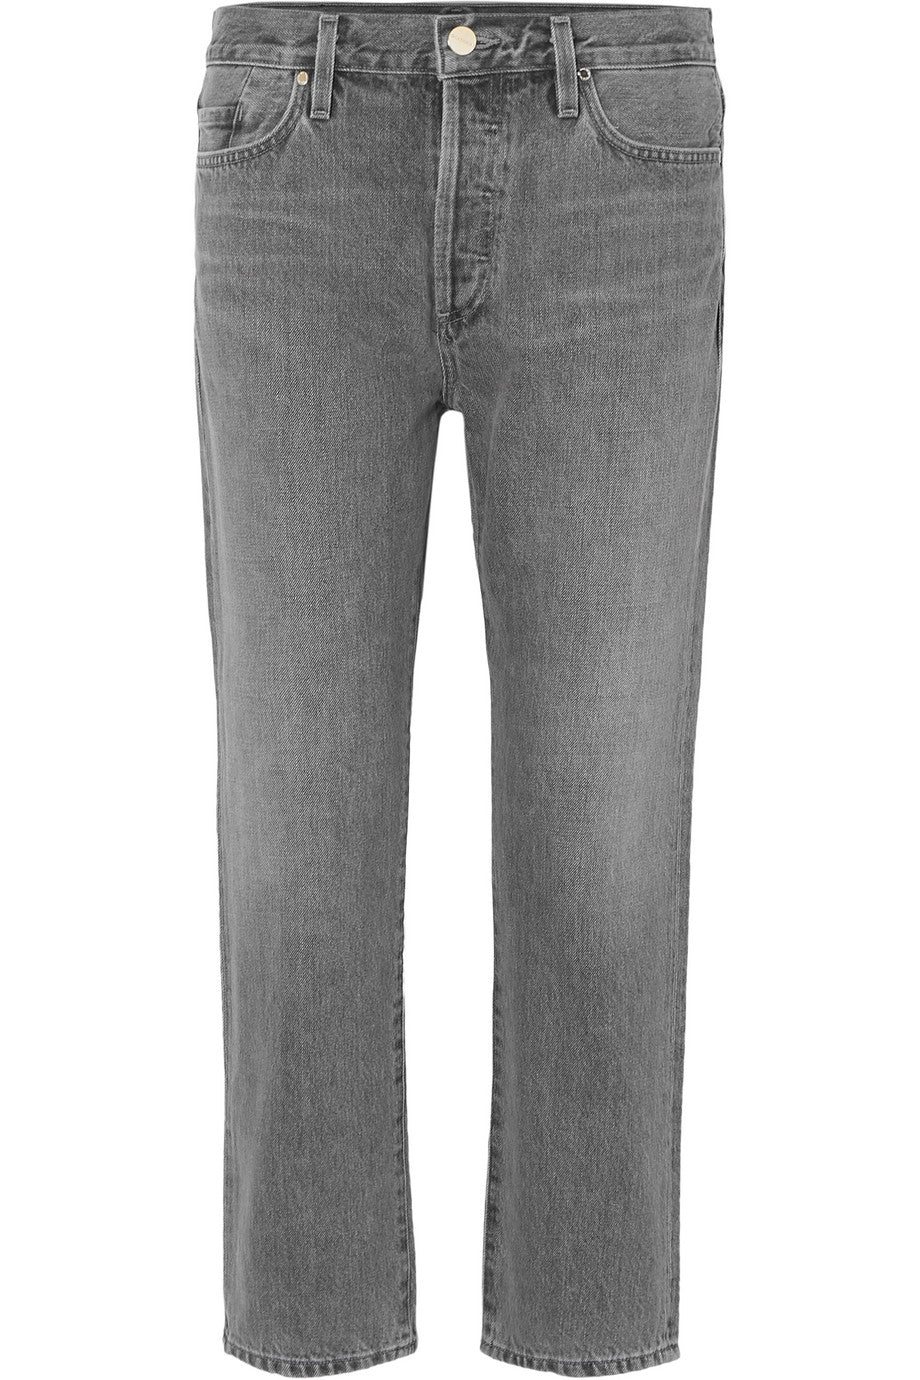 Goldsign - 'The low slung' grey gray denim cropped mid-rise straight-leg jeans